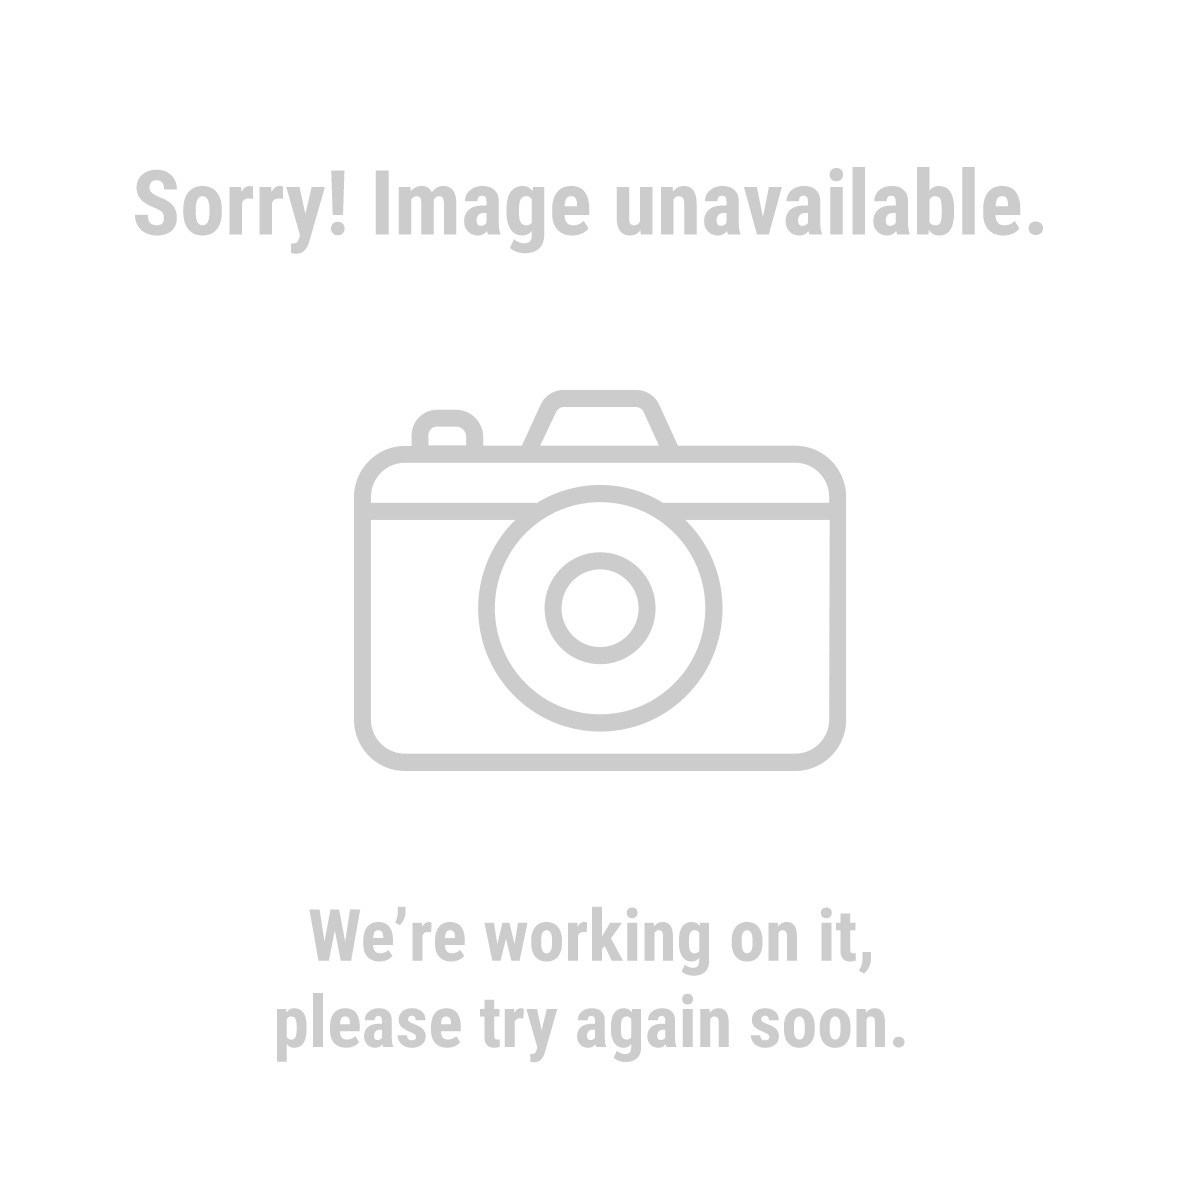 Harbor Freight Metric Tap And Die Set Junk Rs Warrior Forum